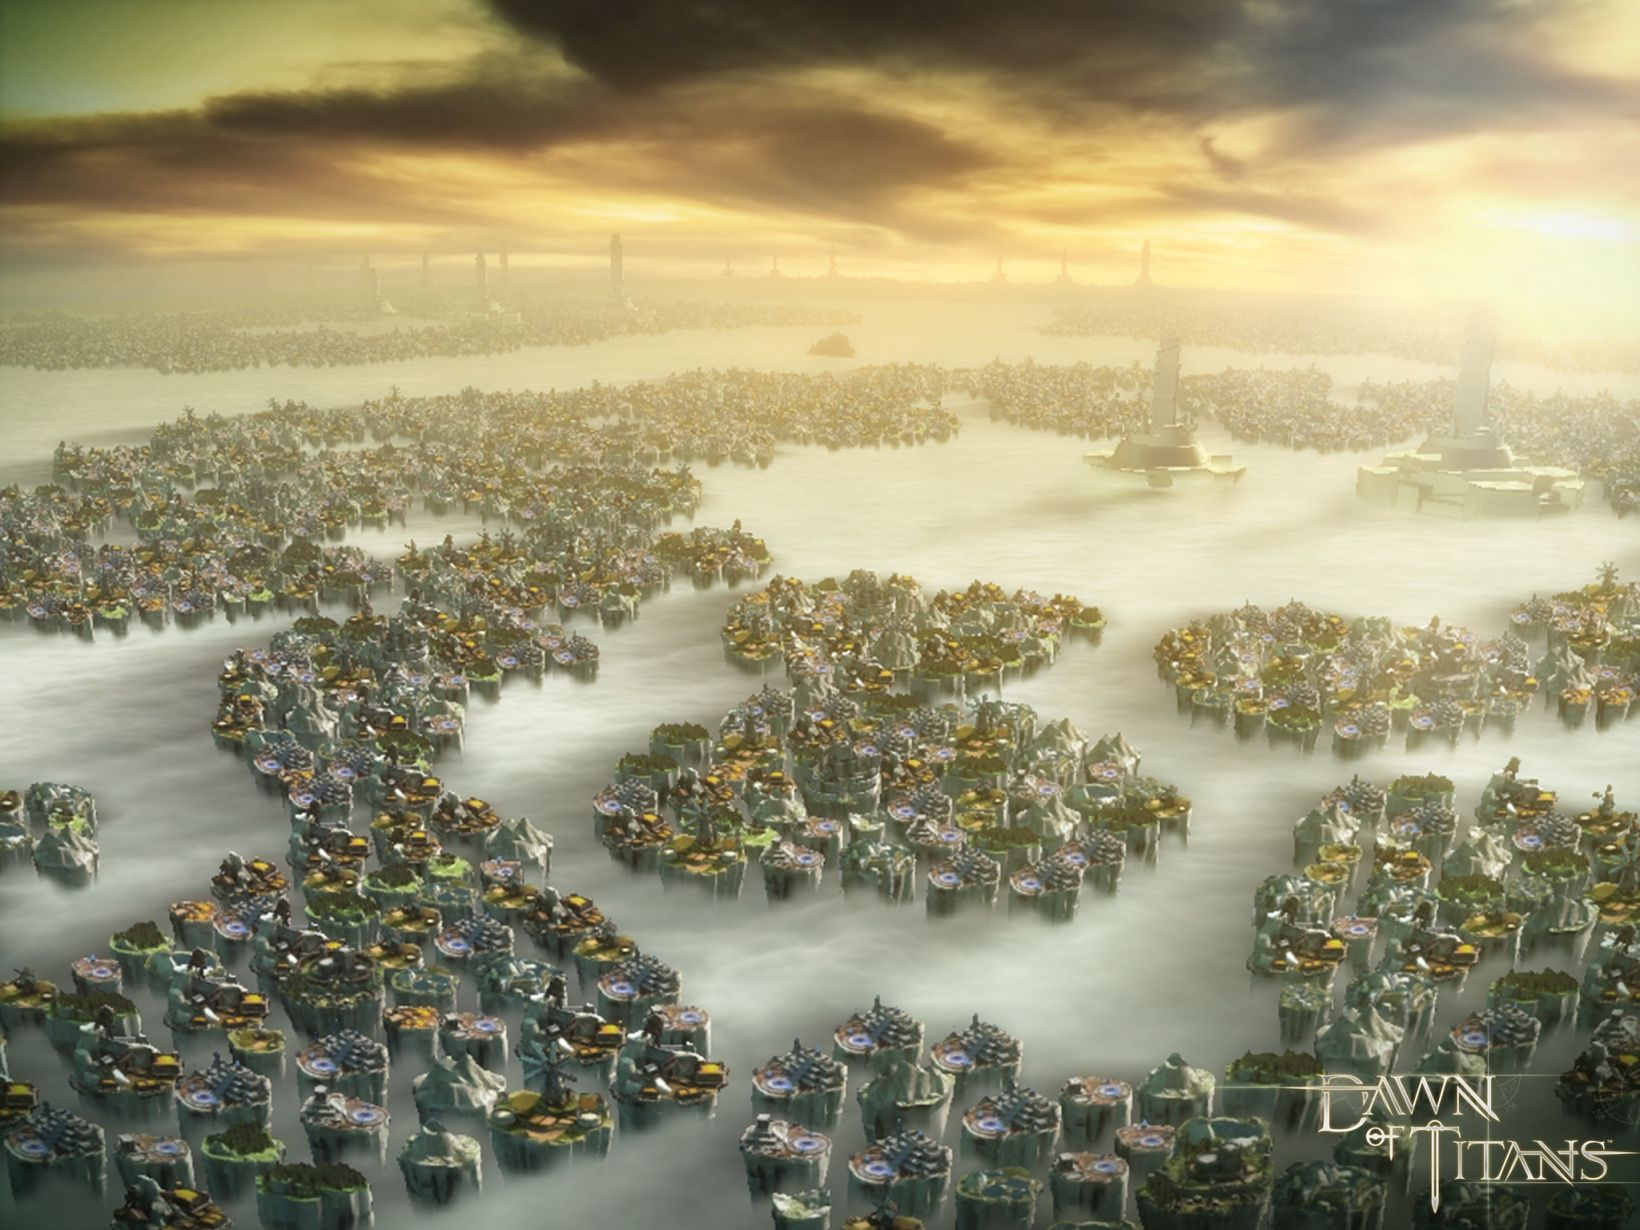 GDC 2015: Hands-on with Dawn of Titans - Zynga's face-clawingly gorgeous action strategy game